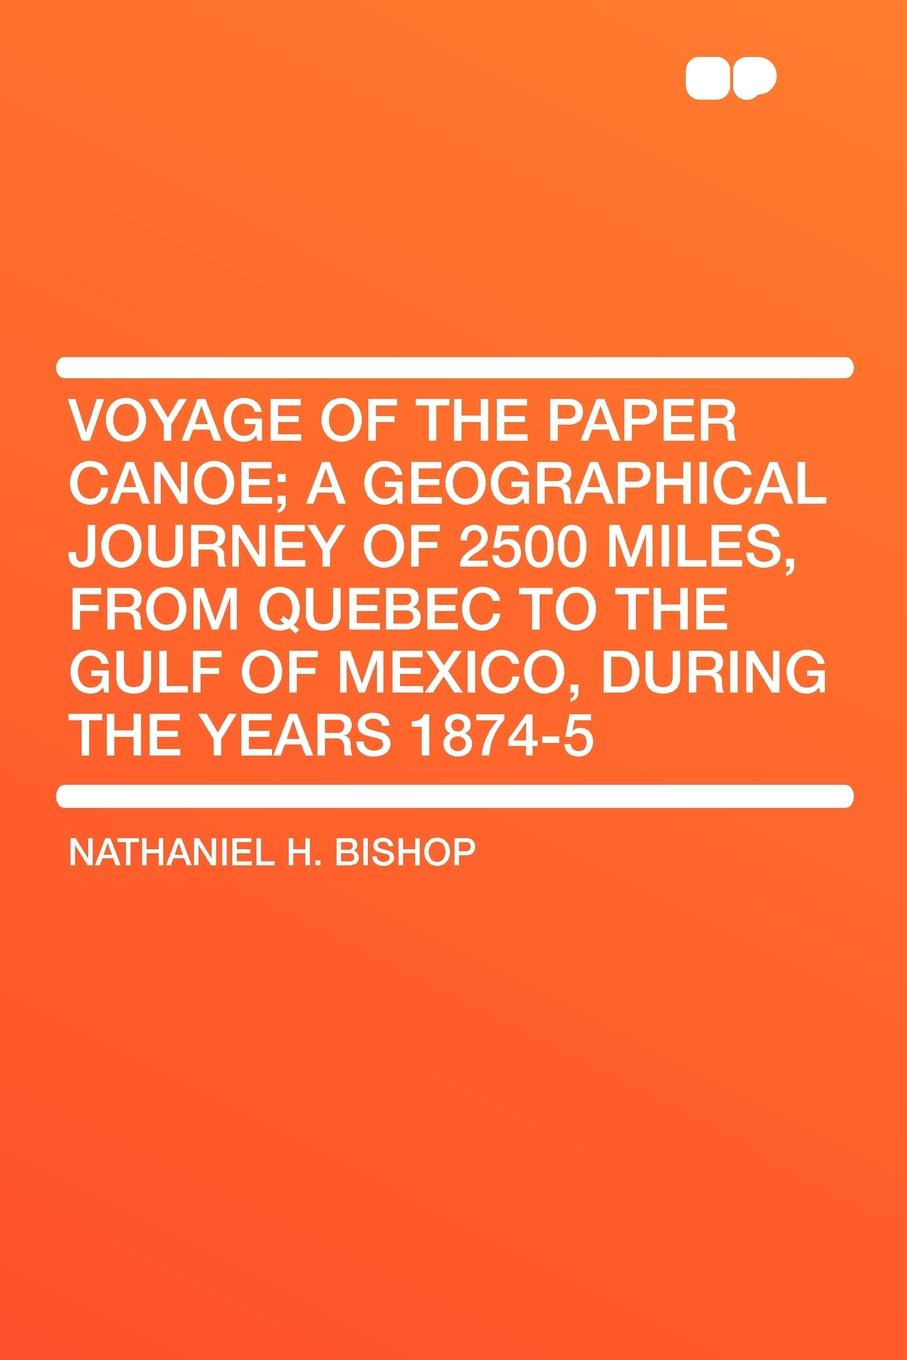 Nathaniel H. Bishop Voyage of the Paper Canoe; a geographical journey of 2500 miles, from Quebec to the Gulf of Mexico, during the years 1874-5 mccarty joseph hendrickson two thousand miles through the heart of mexico